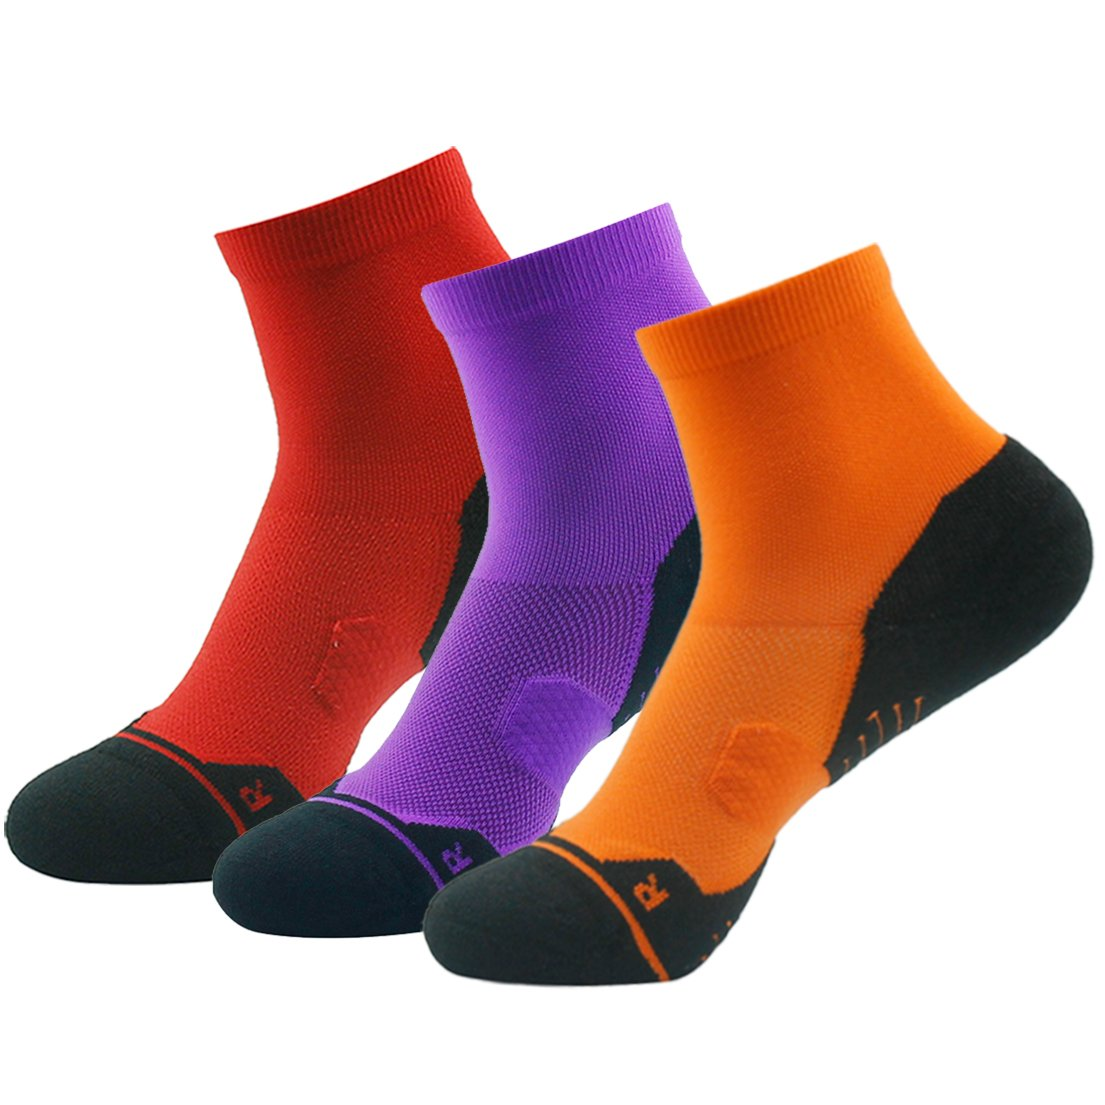 Z3 Pair orange&red&purple Running Socks Support, HUSO Men Women High Performance Arch Compression Cushioned Quarter Socks 1,2,3,4,6 Pairs